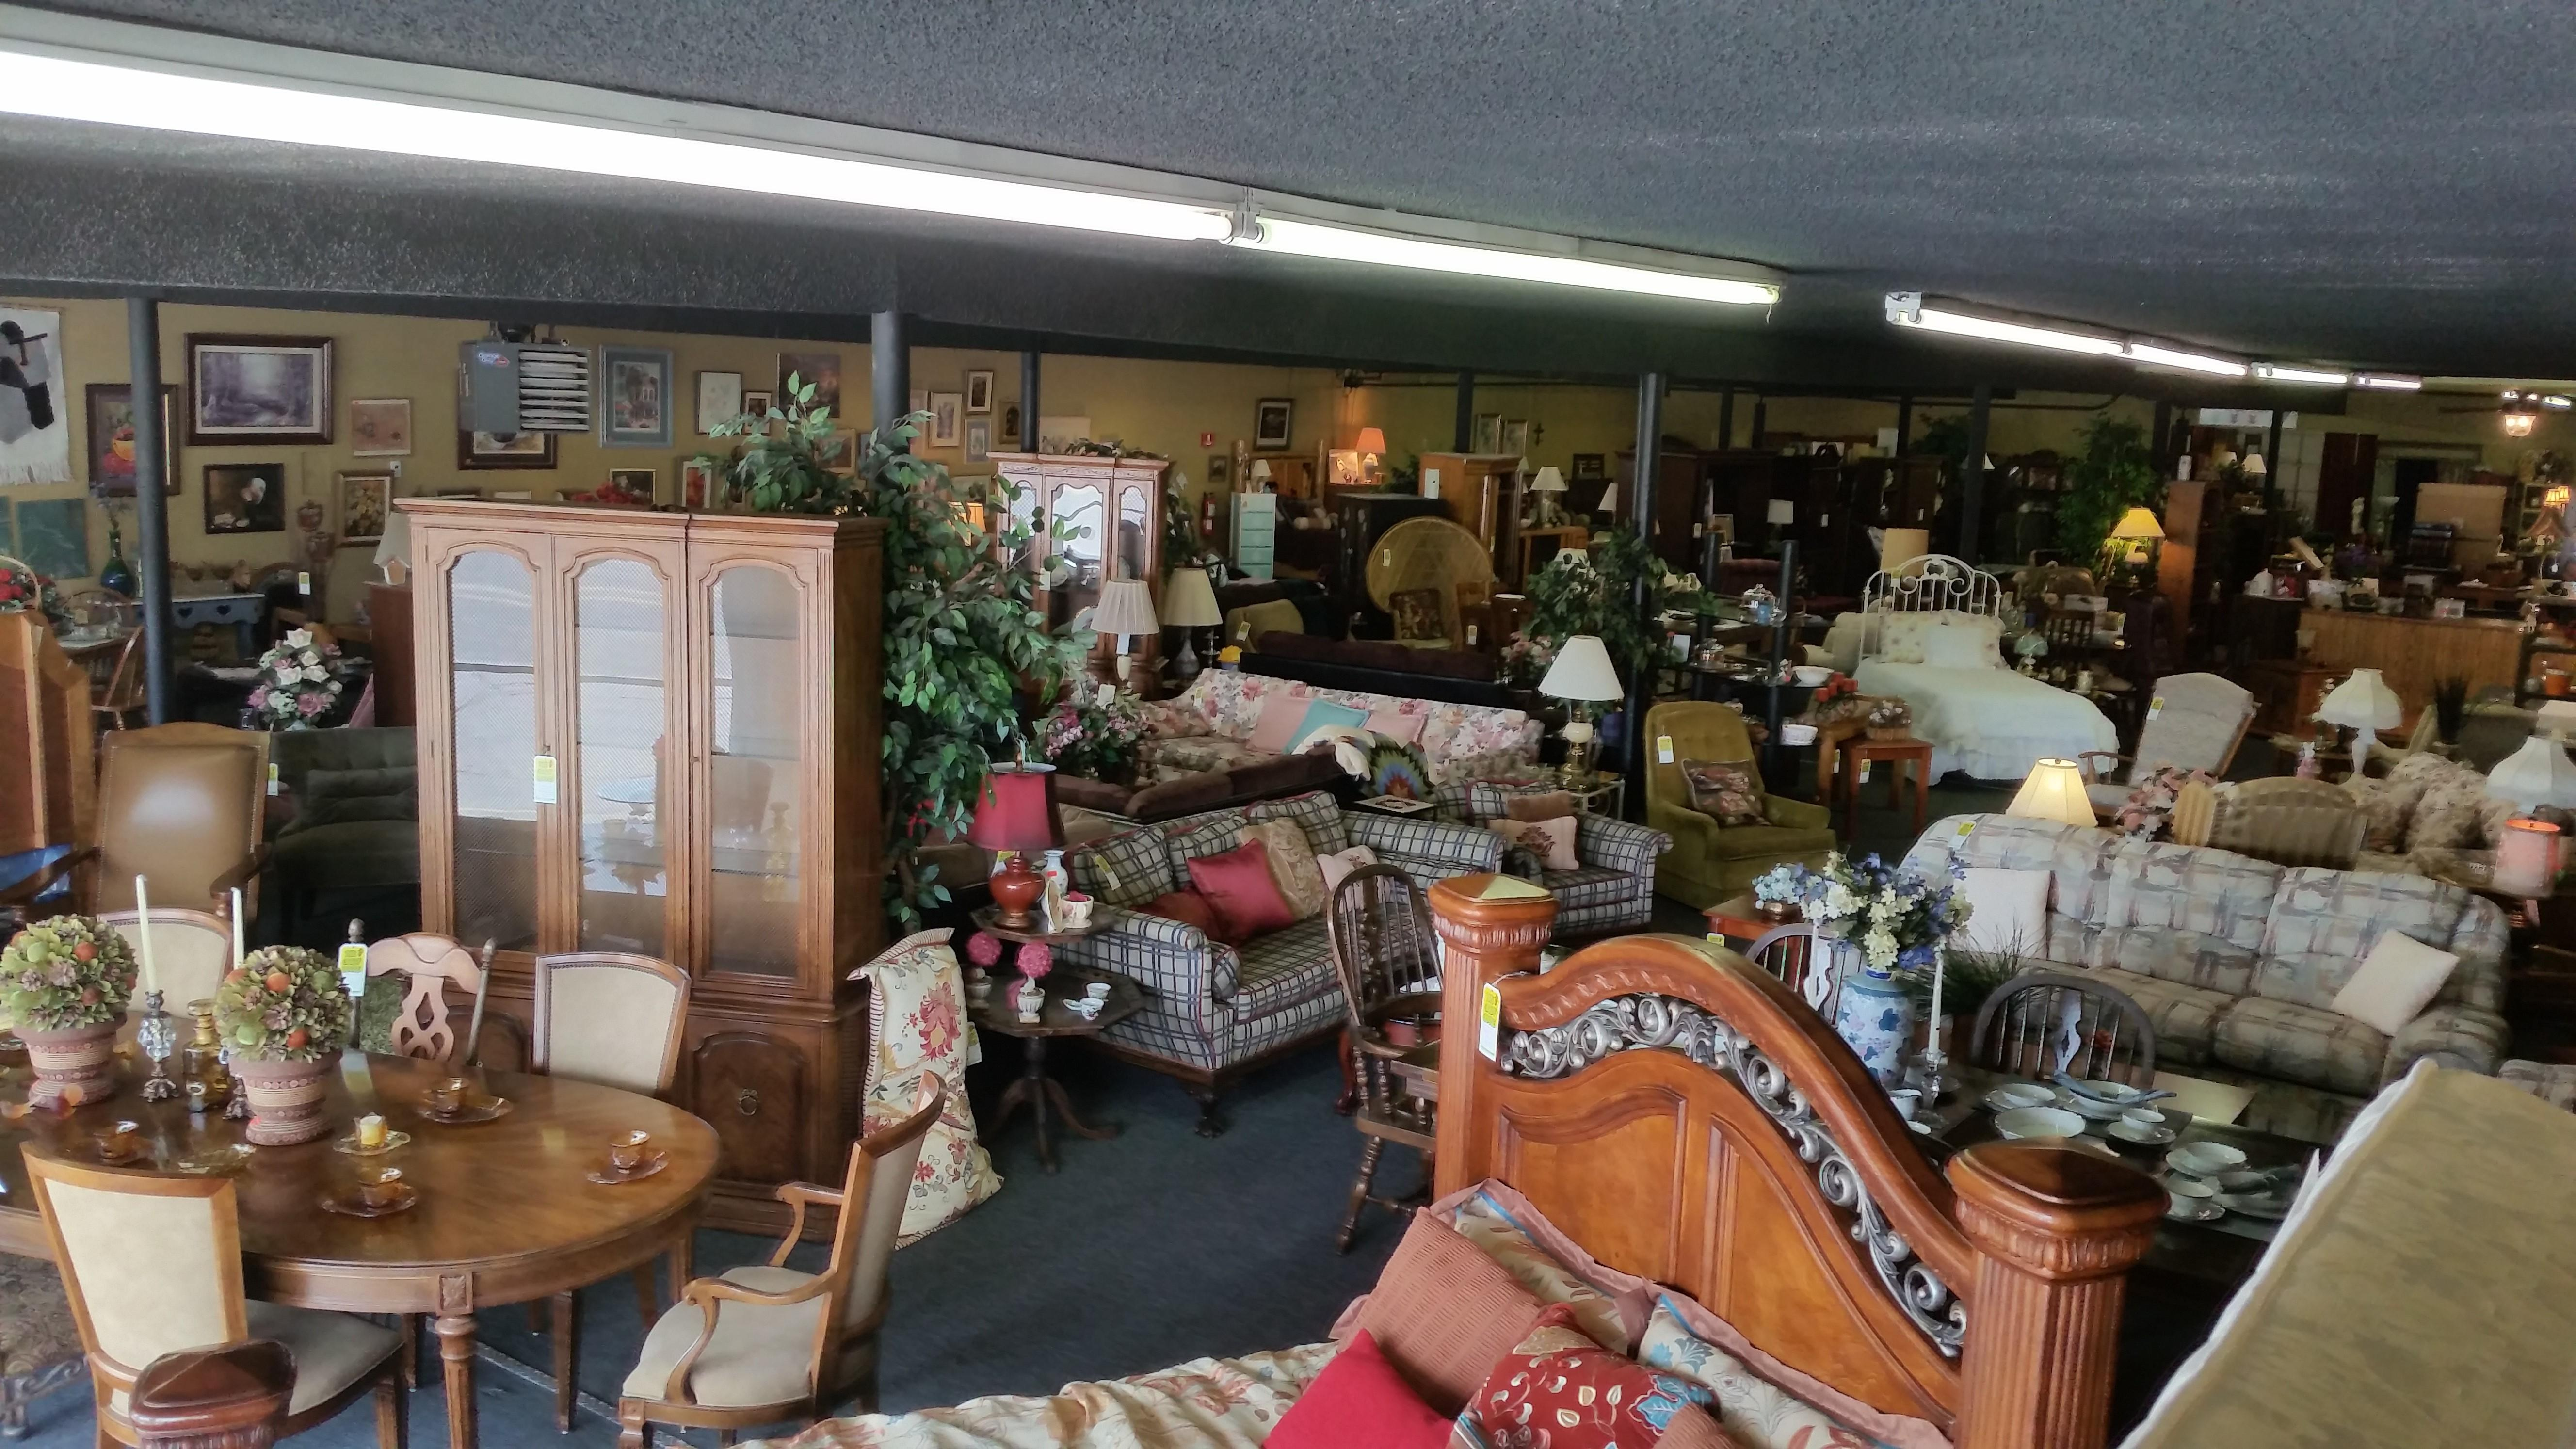 Consignment Furniture Stores Near Me Now Designing An Aesthetic